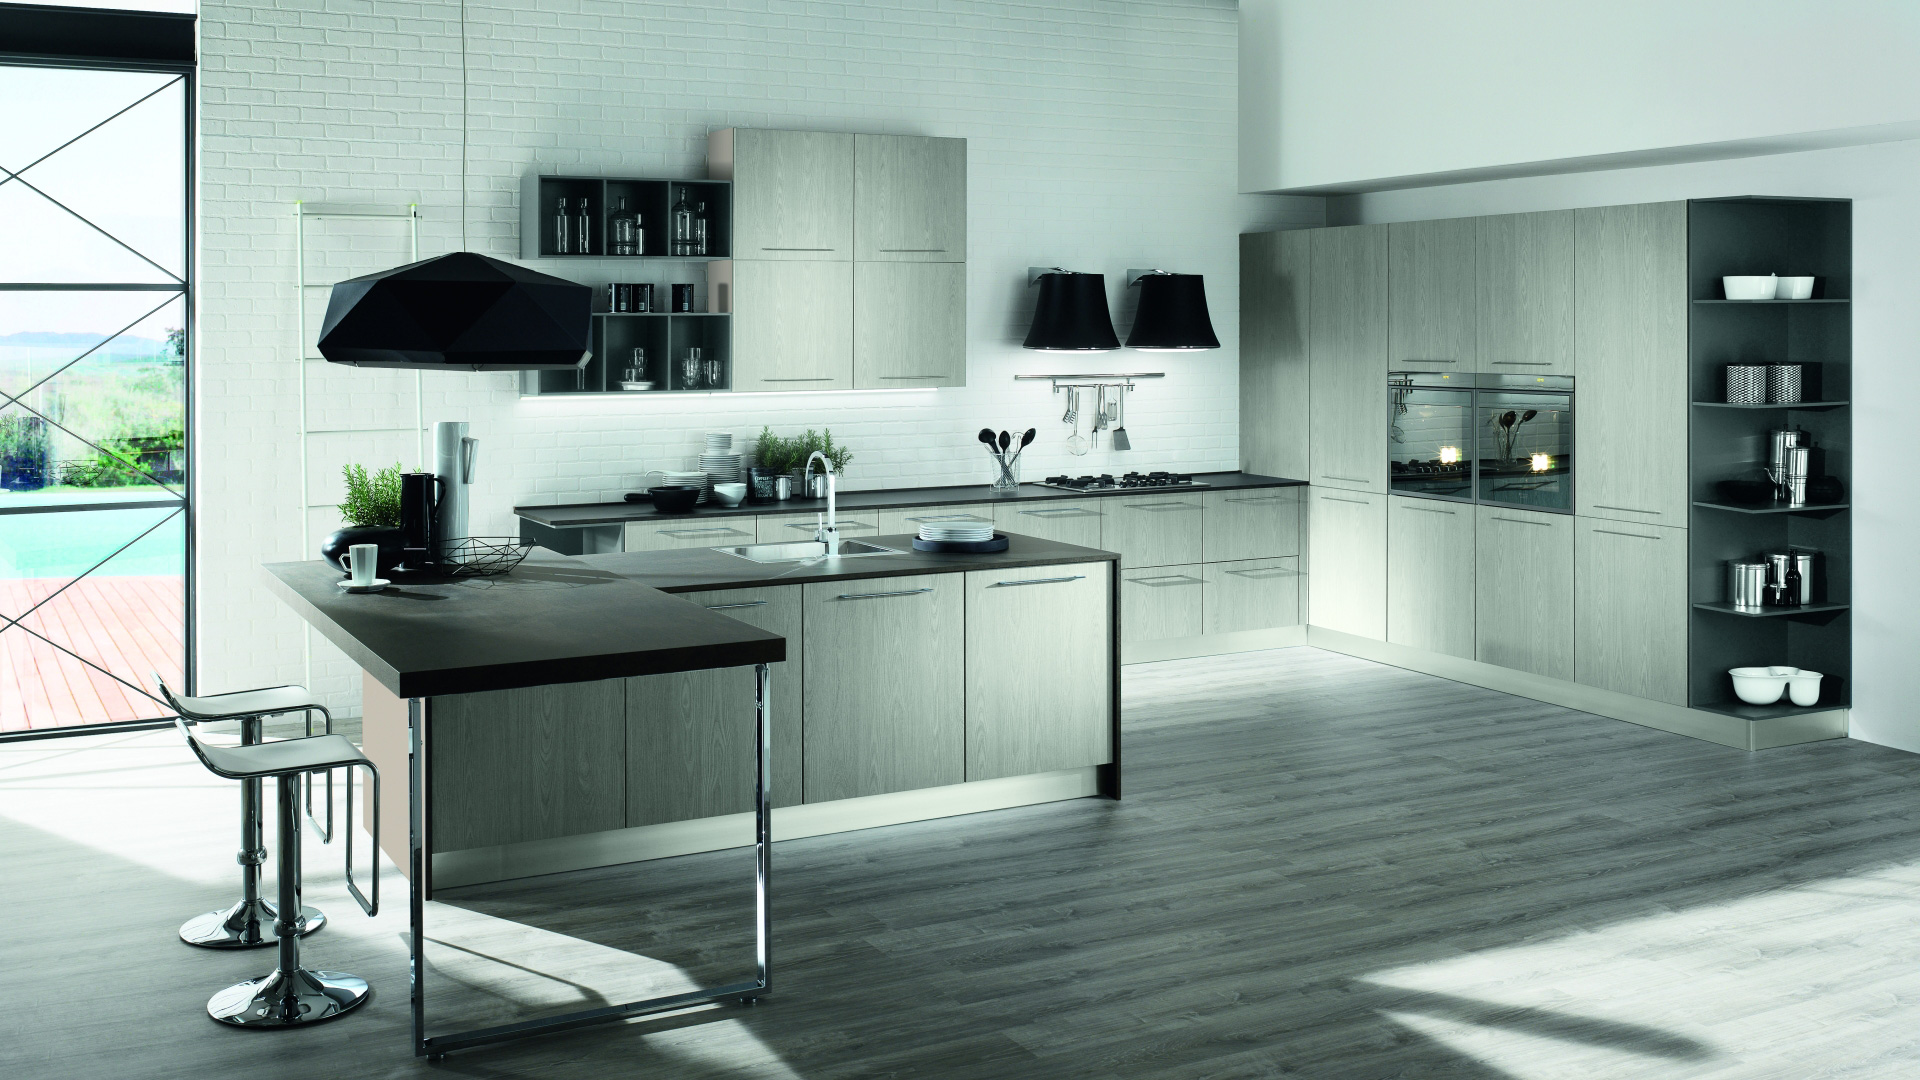 Cucine Shop On Line Of Mobilturi Cucine Moderne Brio Shop Online Su Grancasa